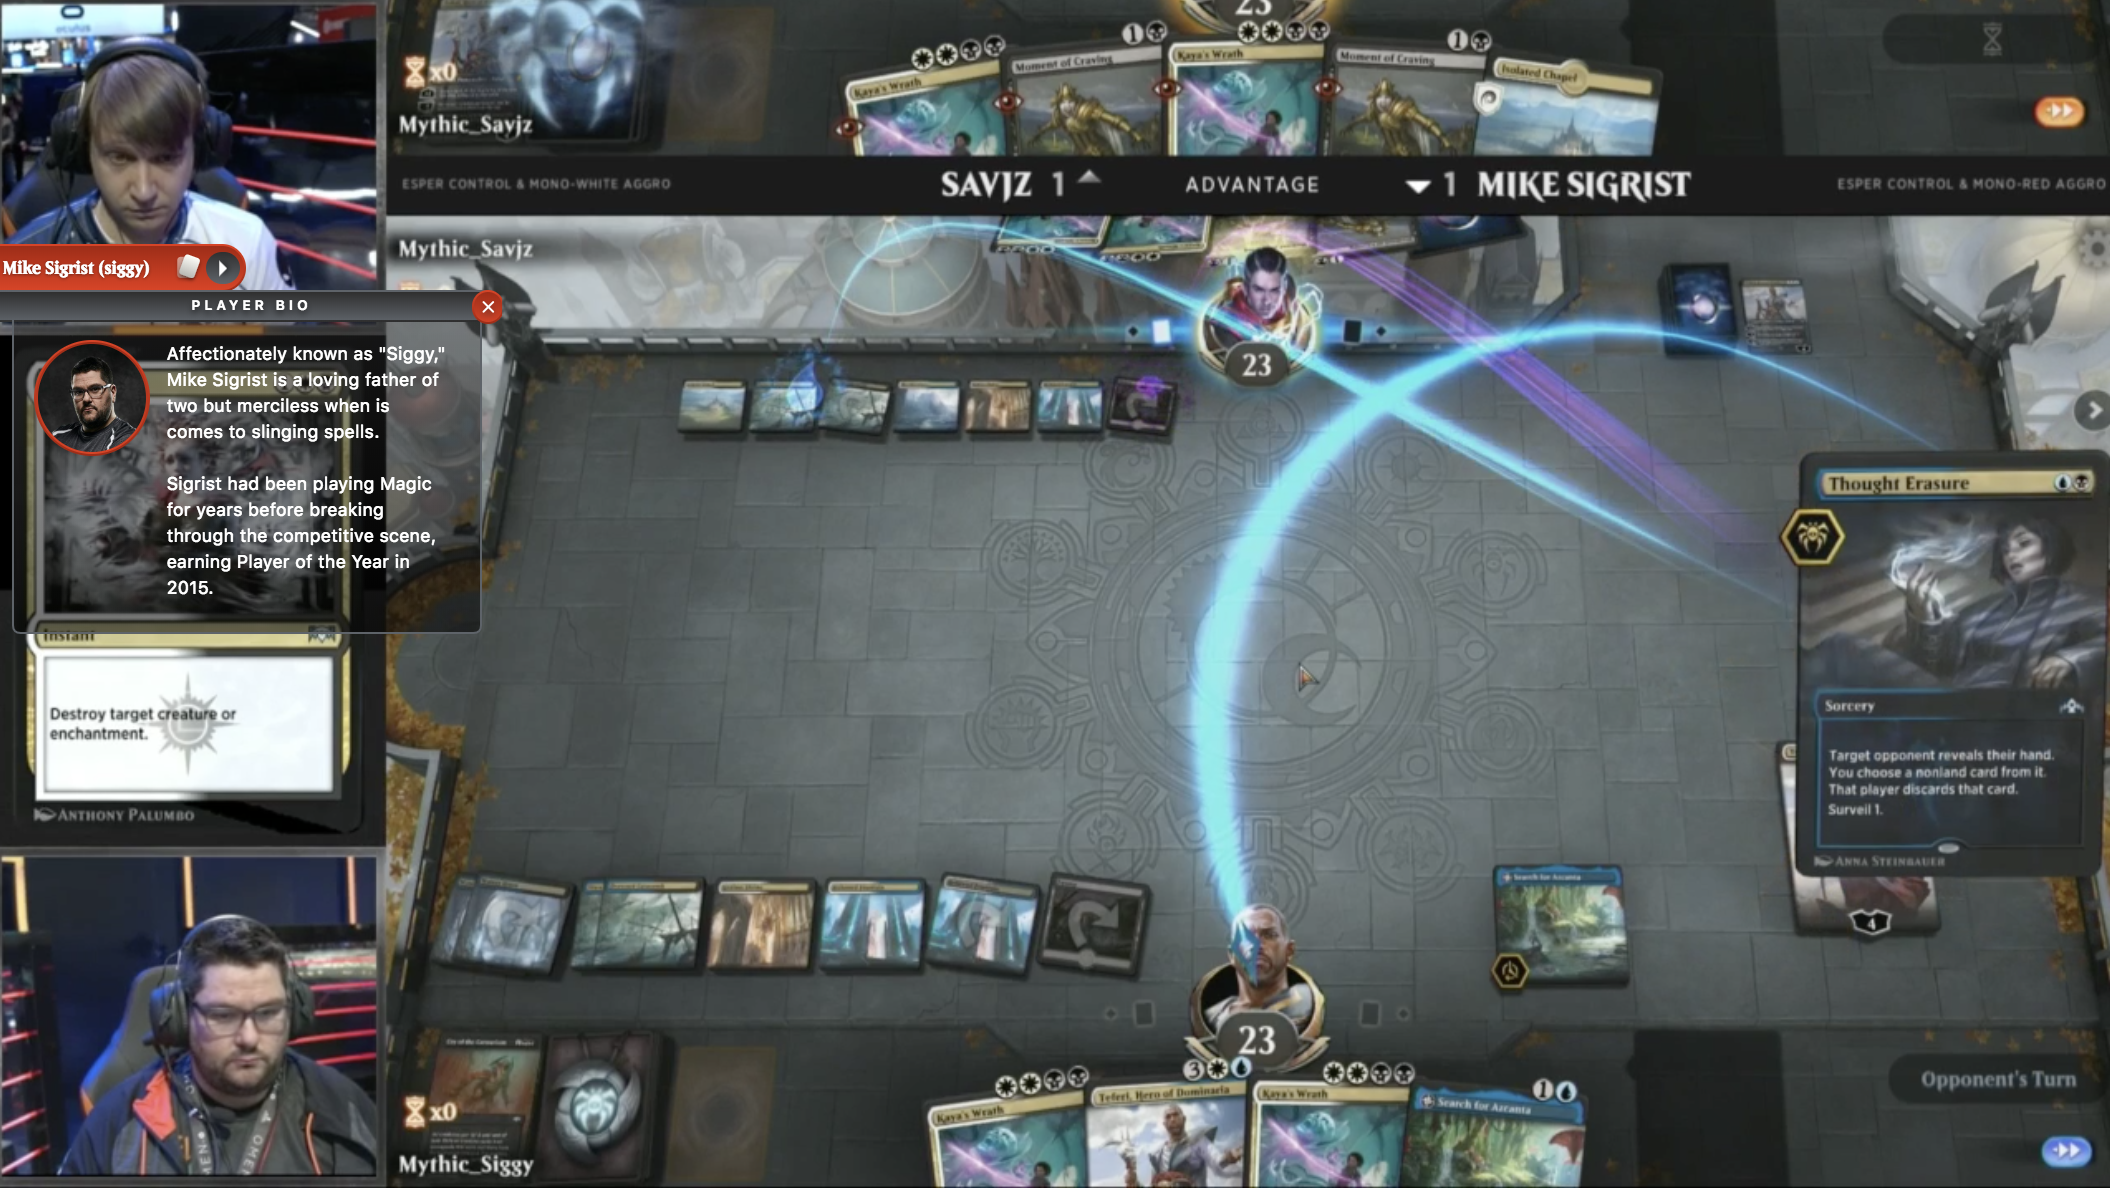 CardBoard Live Twitch Extension at the Mythic Invitational